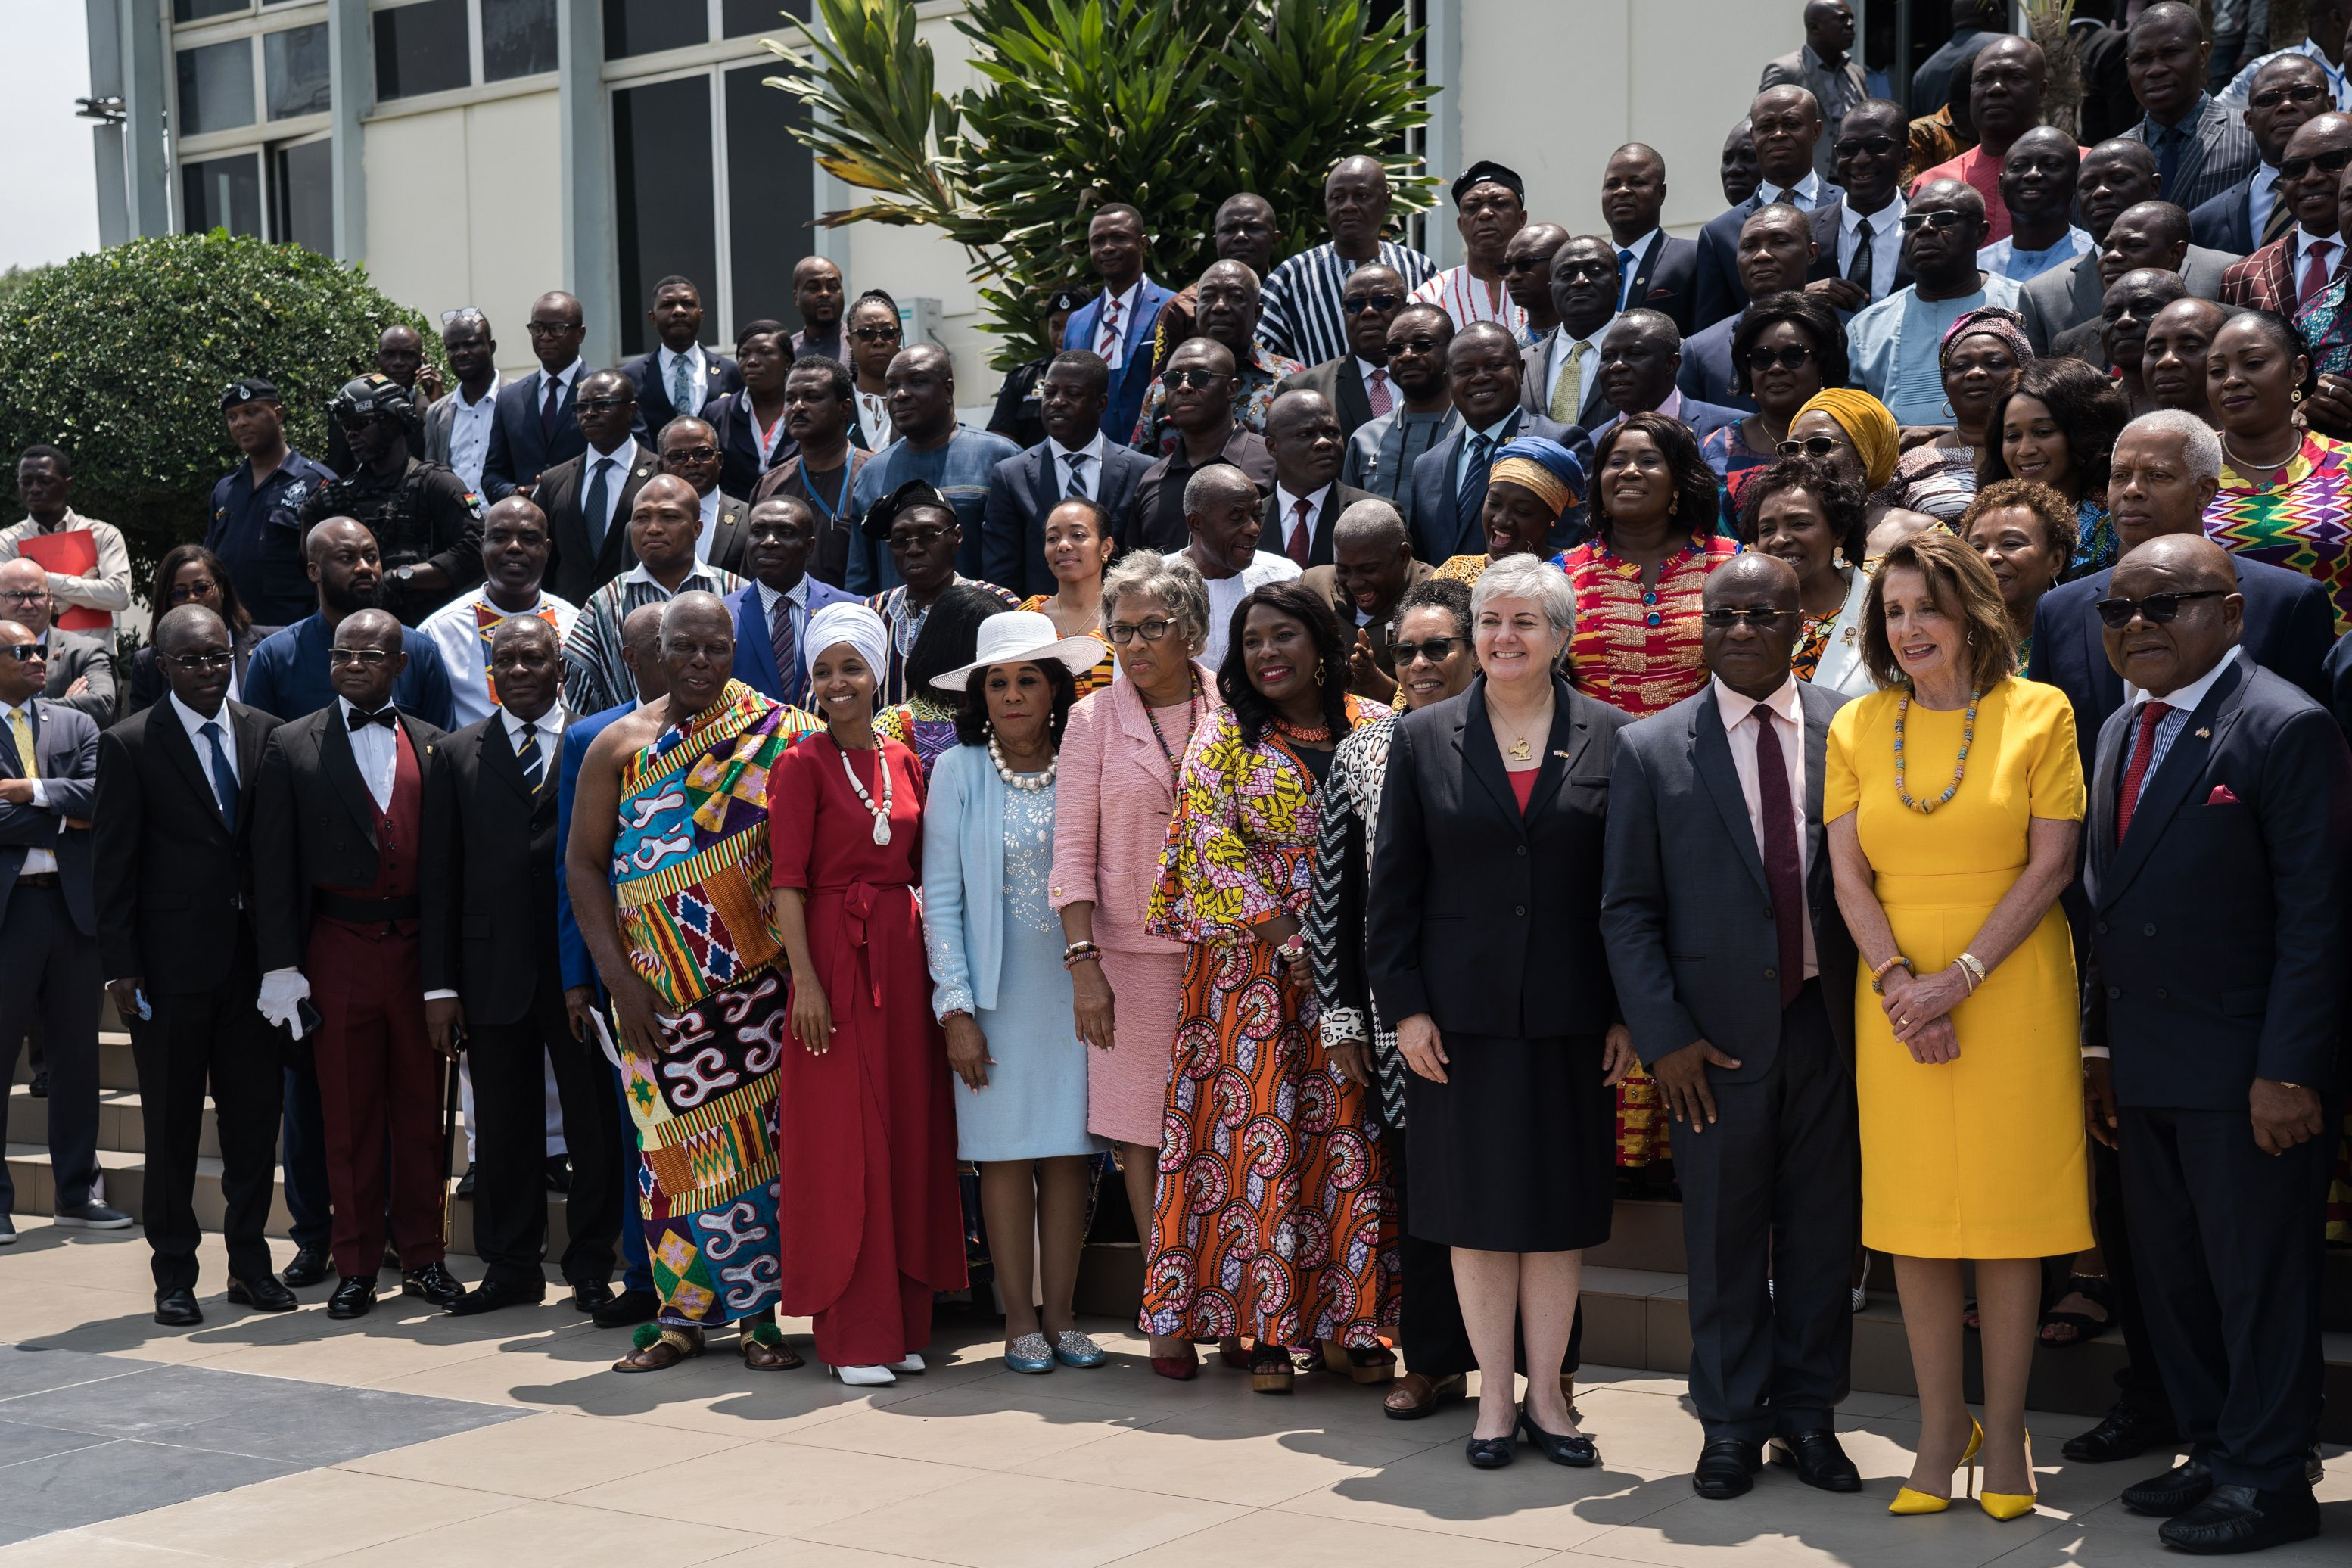 """US Speaker of the House Nancy Pelosi (2nd R), Speaker of Ghana's Parliament Mike Aaron Oquaye (R) and US Representative Ilhan Omar (5th L) pose for a family picture with members of Parliament in front of the Ghana's Parliament in Accra, on July 31, 2019 during a three-day visit to the country to mark the 400 years anniversary since the first slave shipment left the Ghana's coast for United States. - US House Speaker Nancy Pelosi condemned the """"grave evil"""" of slavery in a speech to Ghana's parliament marking 400 years since the first shipment of enslaved Africans to America. Pelosi was leading a delegation including members of the Congressional Black Caucus to the West African country, four centuries after the first slave ship arrived in Jamestown, Virginia from the continent. (Photo by Natalija GORMALOVA / AFP)        (Photo credit should read NATALIJA GORMALOVA/AFP/Getty Images)"""